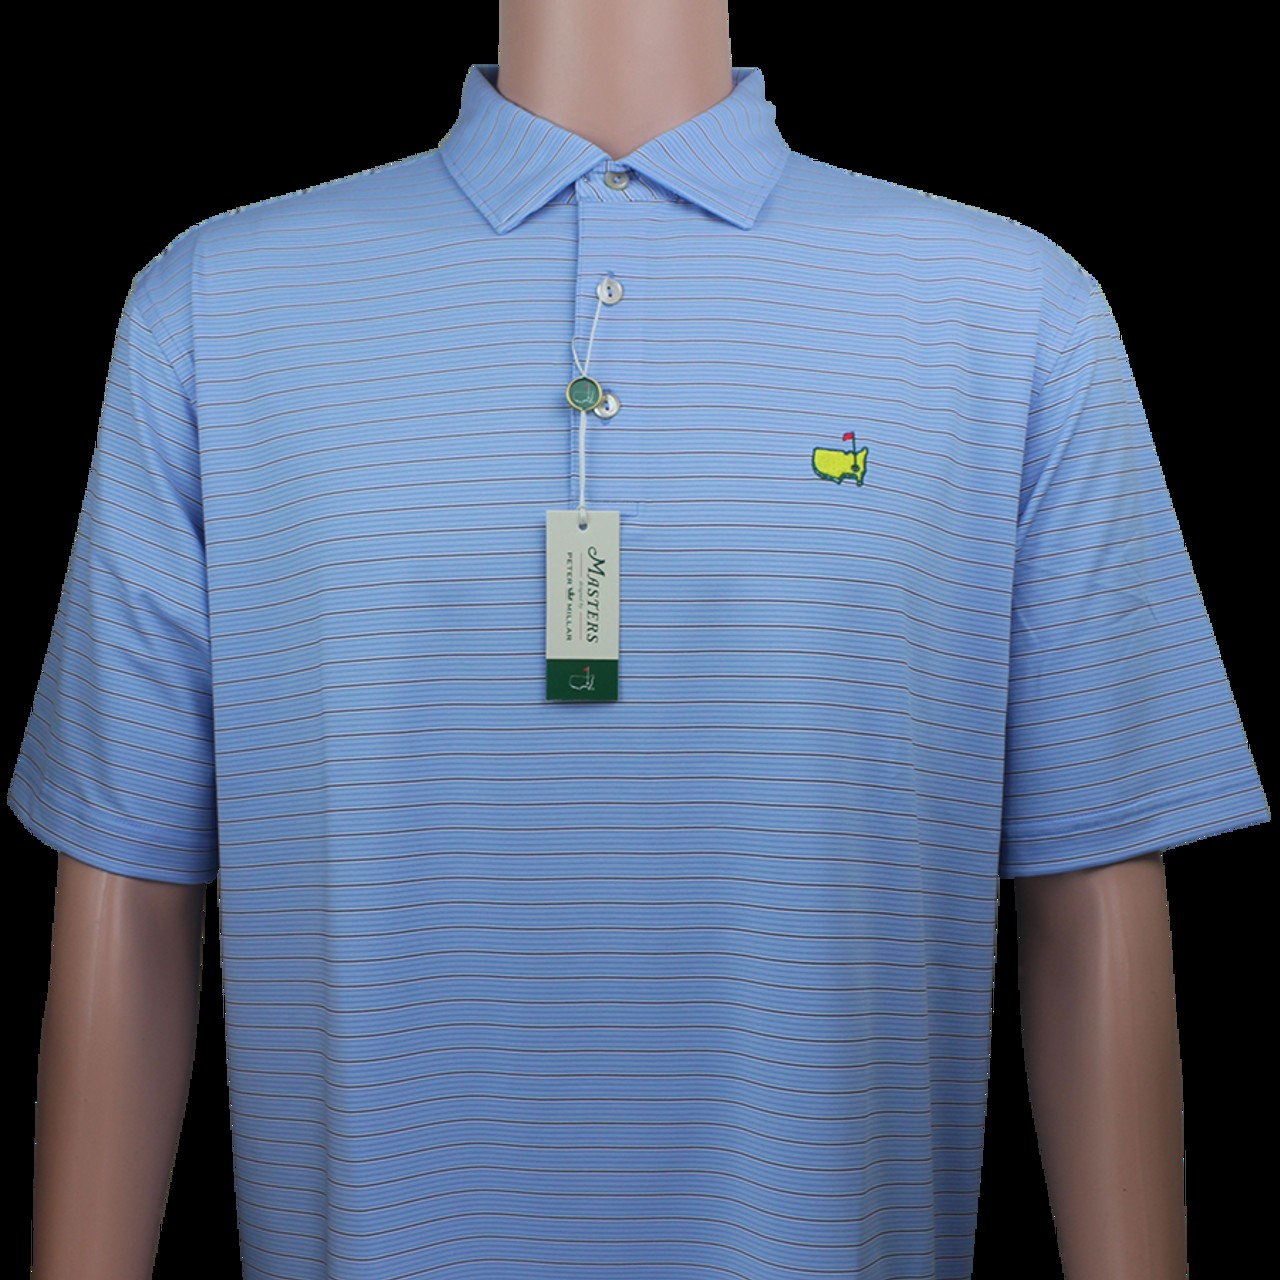 fc90e5d18 Masters Carolina Blue with Navy   White Thin Striped Peter Millar  Performance Tech Golf Shirt